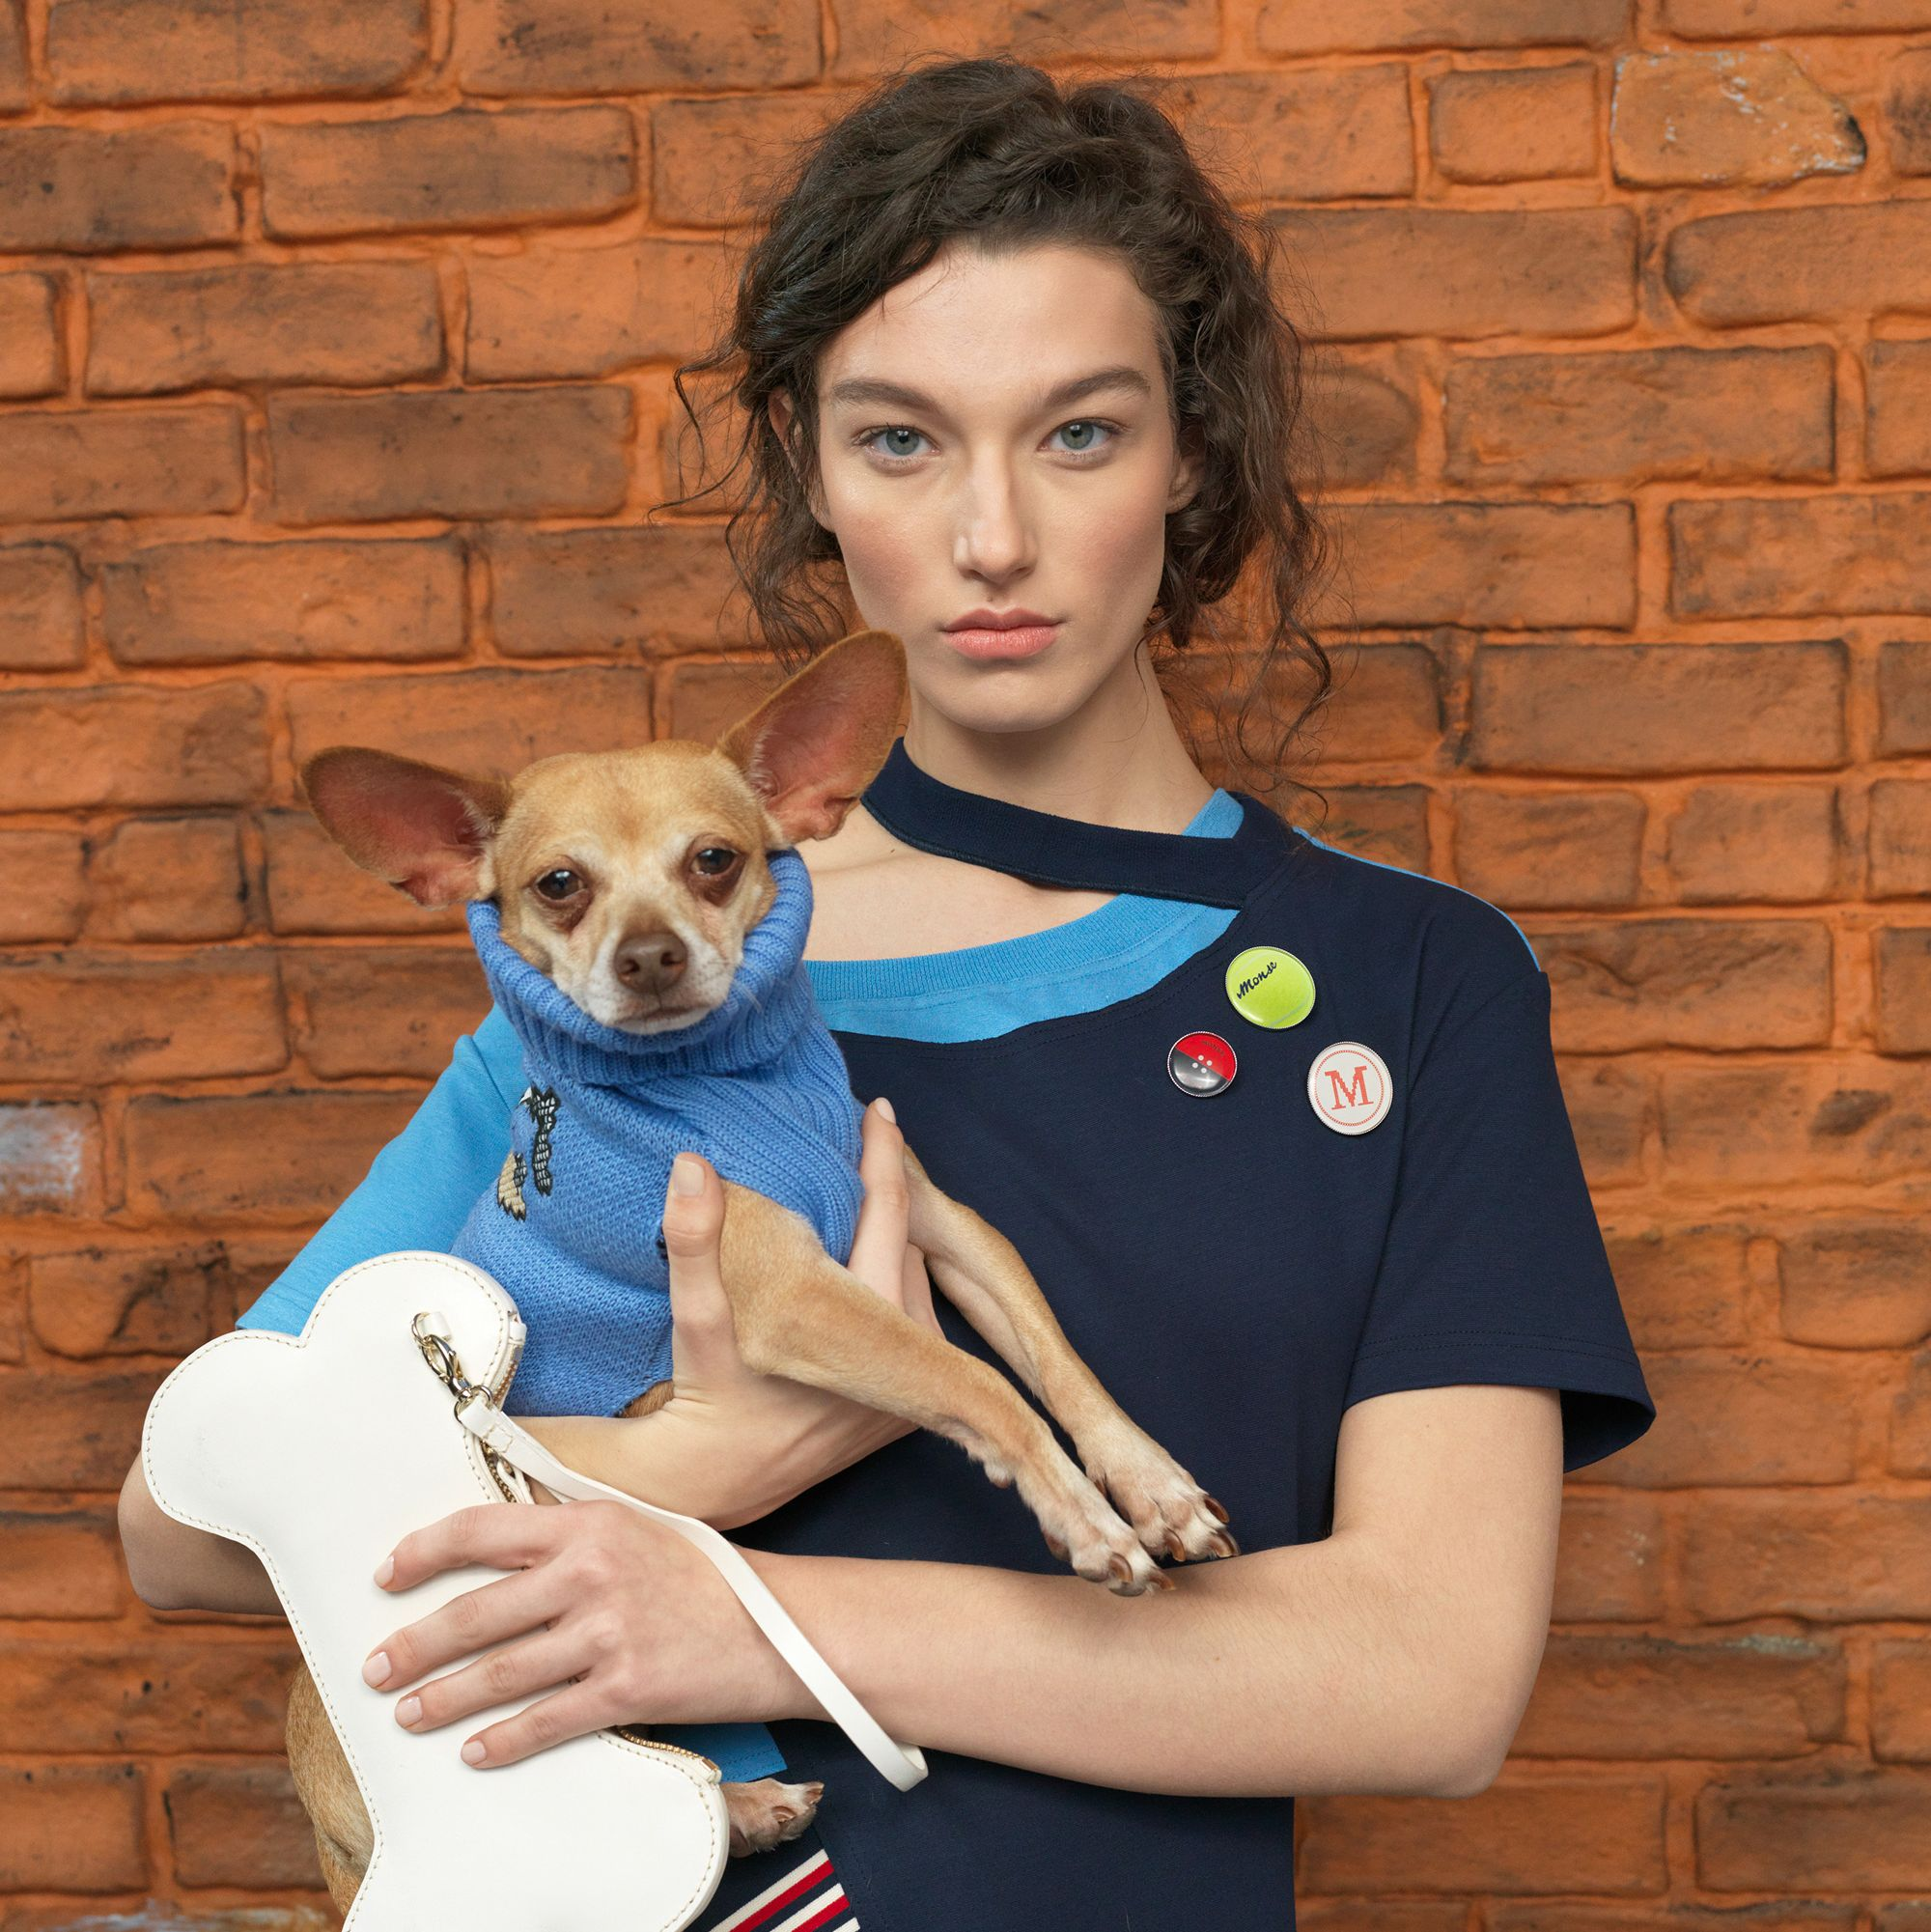 Monse's Pre-Fall 2019 Collection Shoot Features Adorable Dogs For A Great Reason